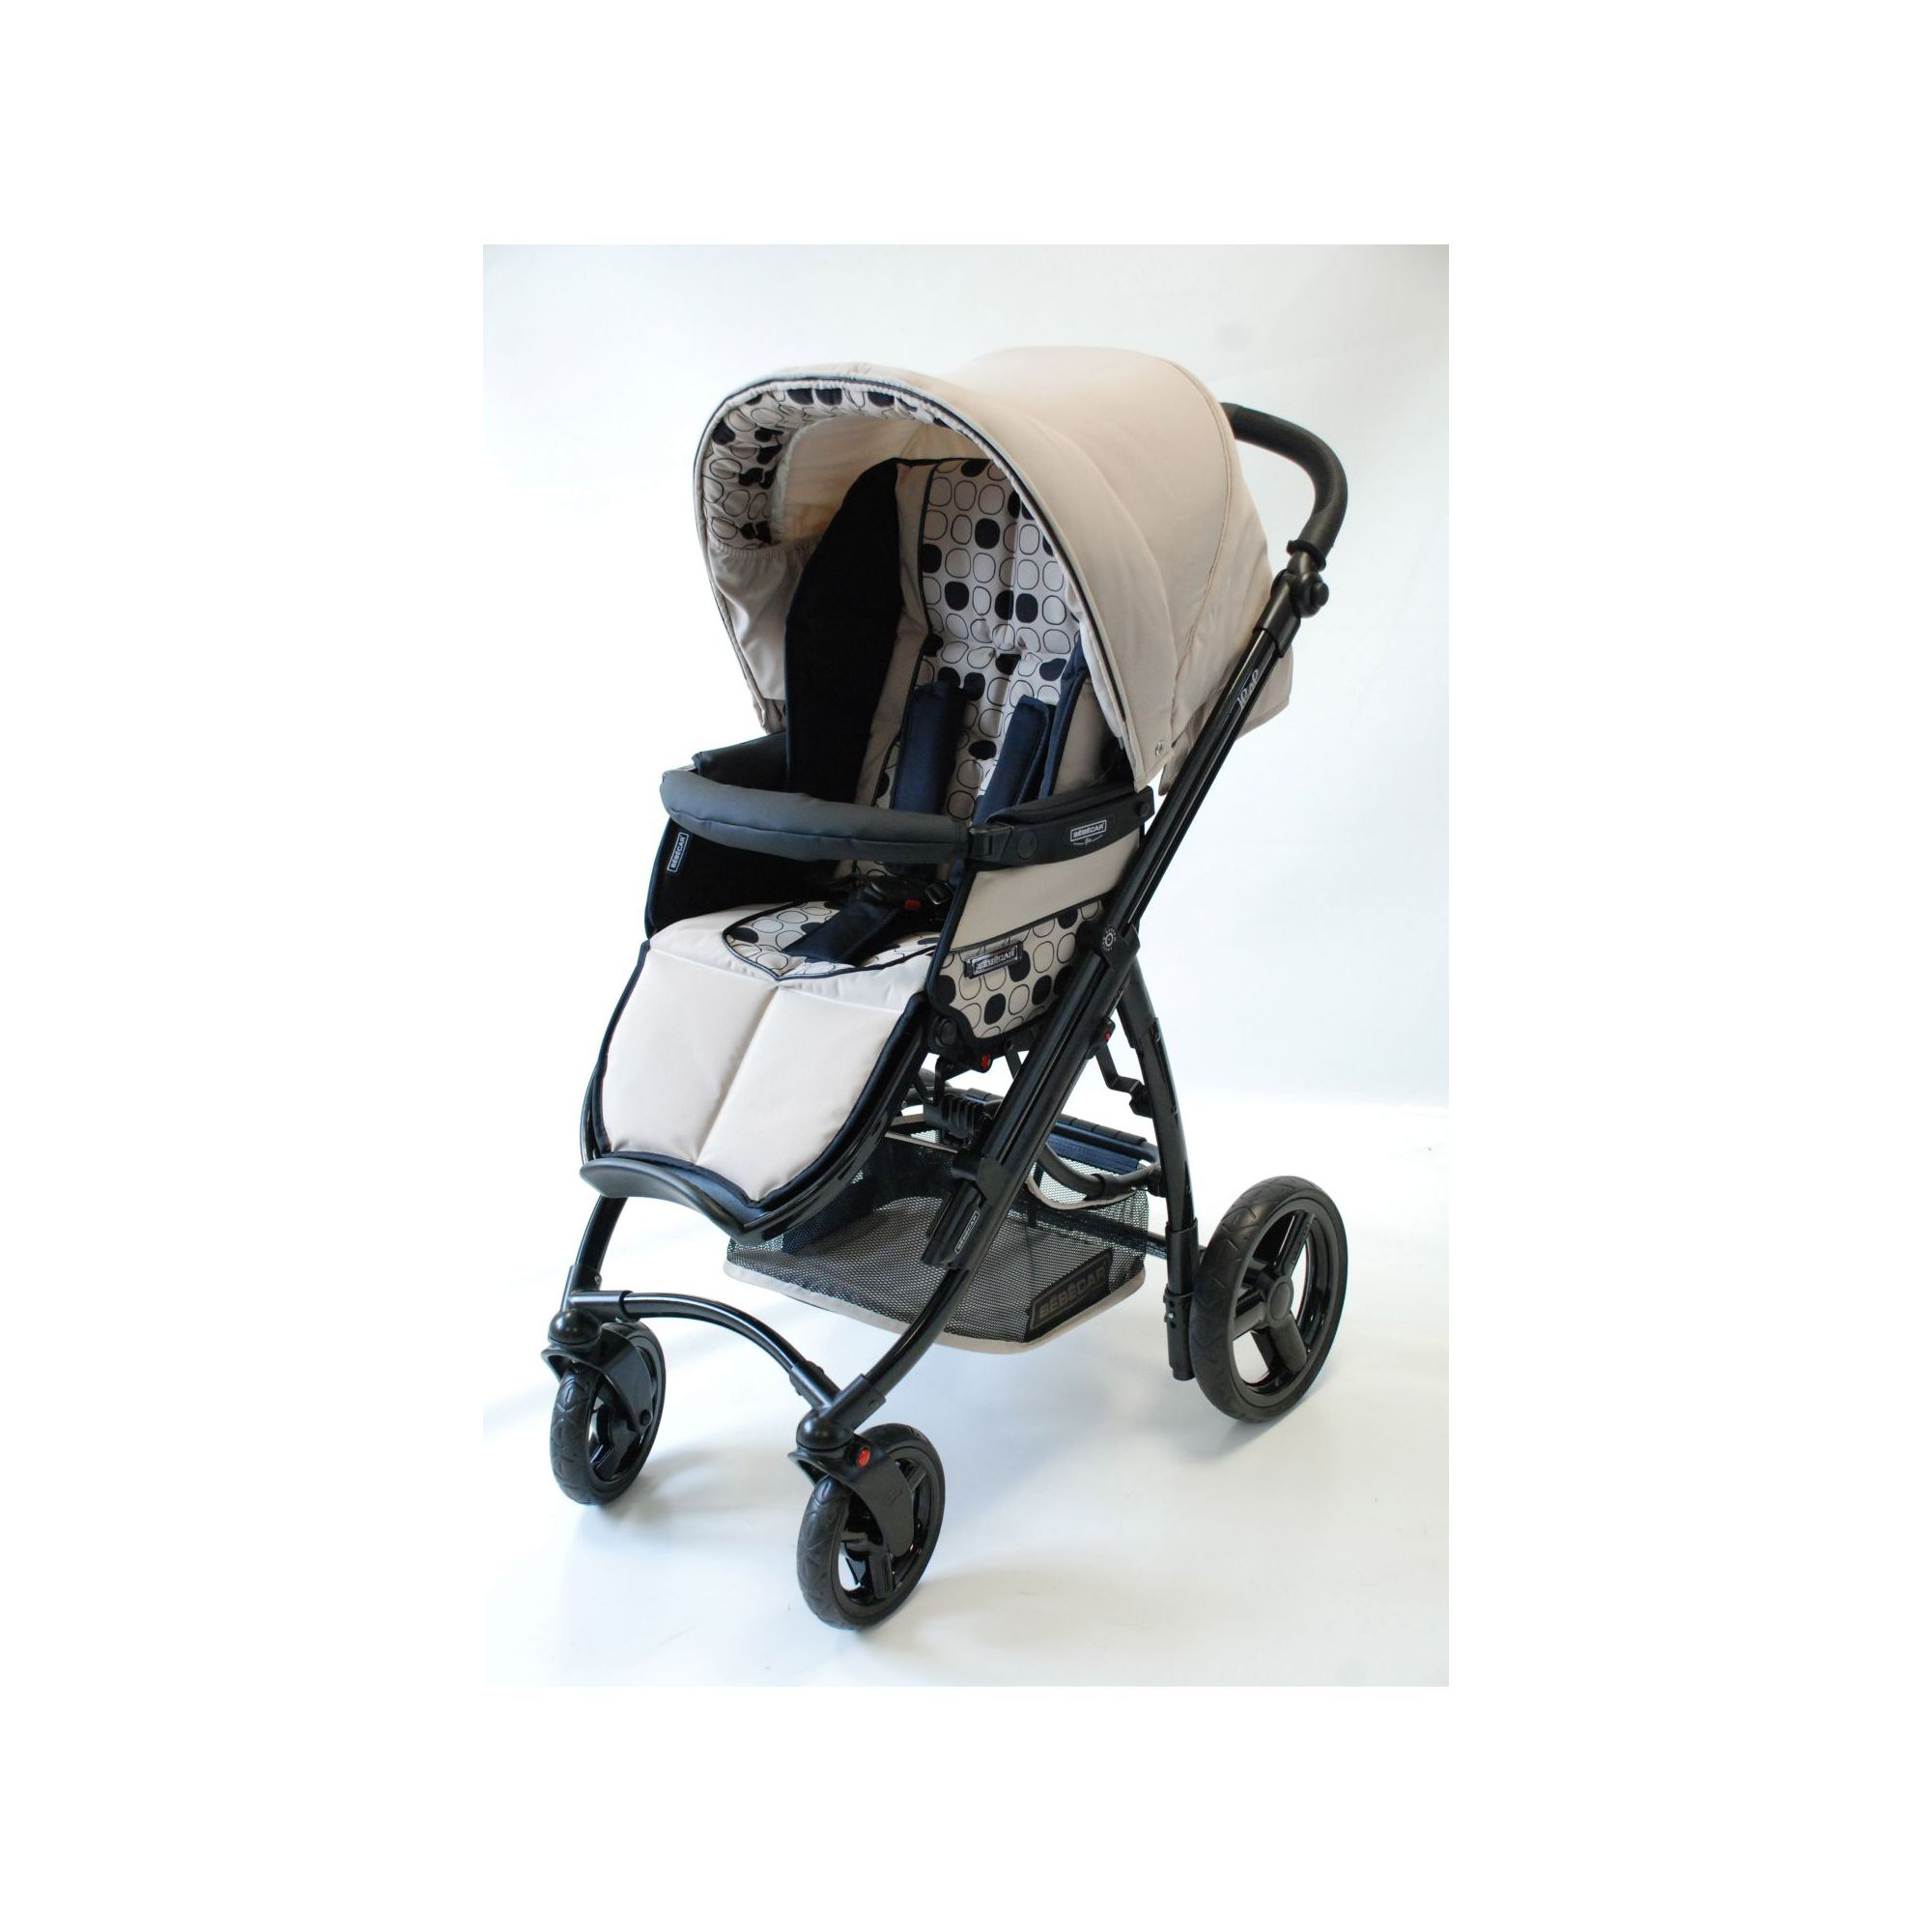 Bebecar Ip-Op black Pushchair Parchment at Tesco Direct